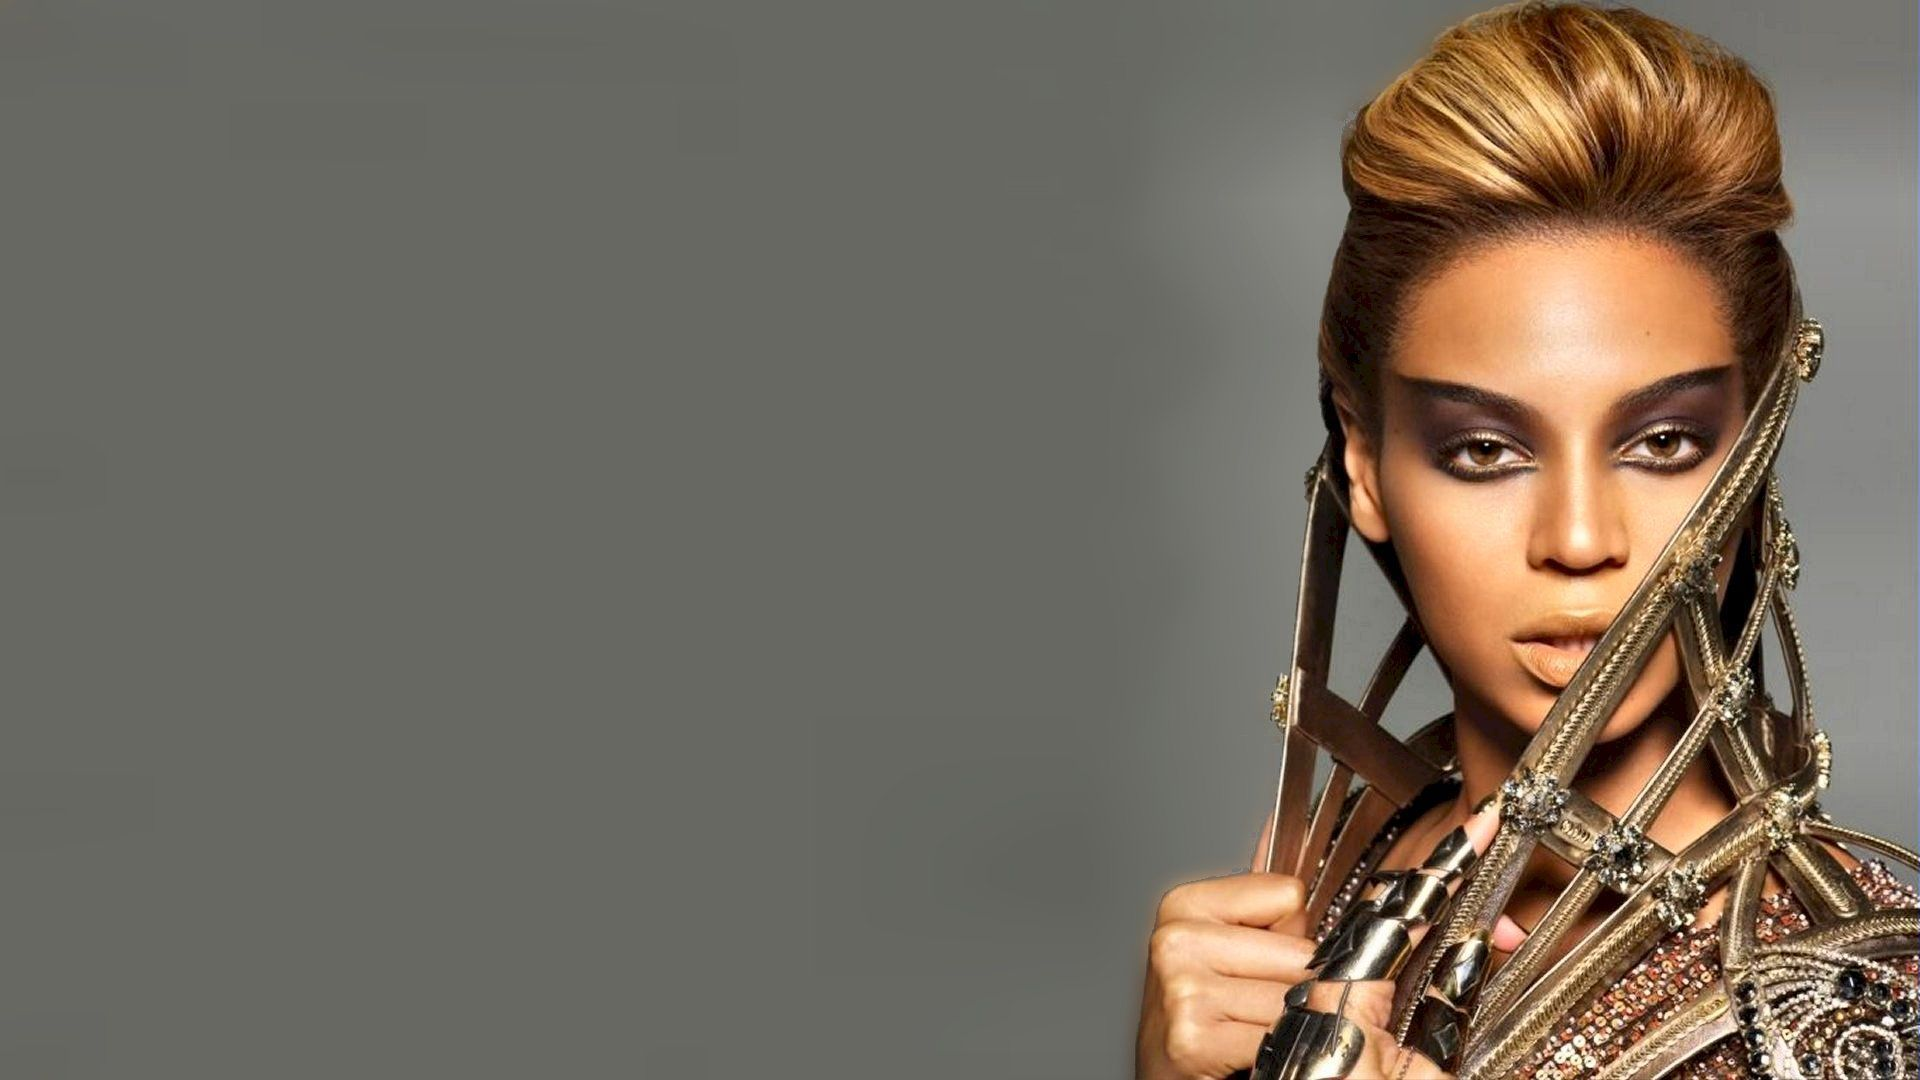 Beyonce HD desktop wallpaper Widescreen High Definition